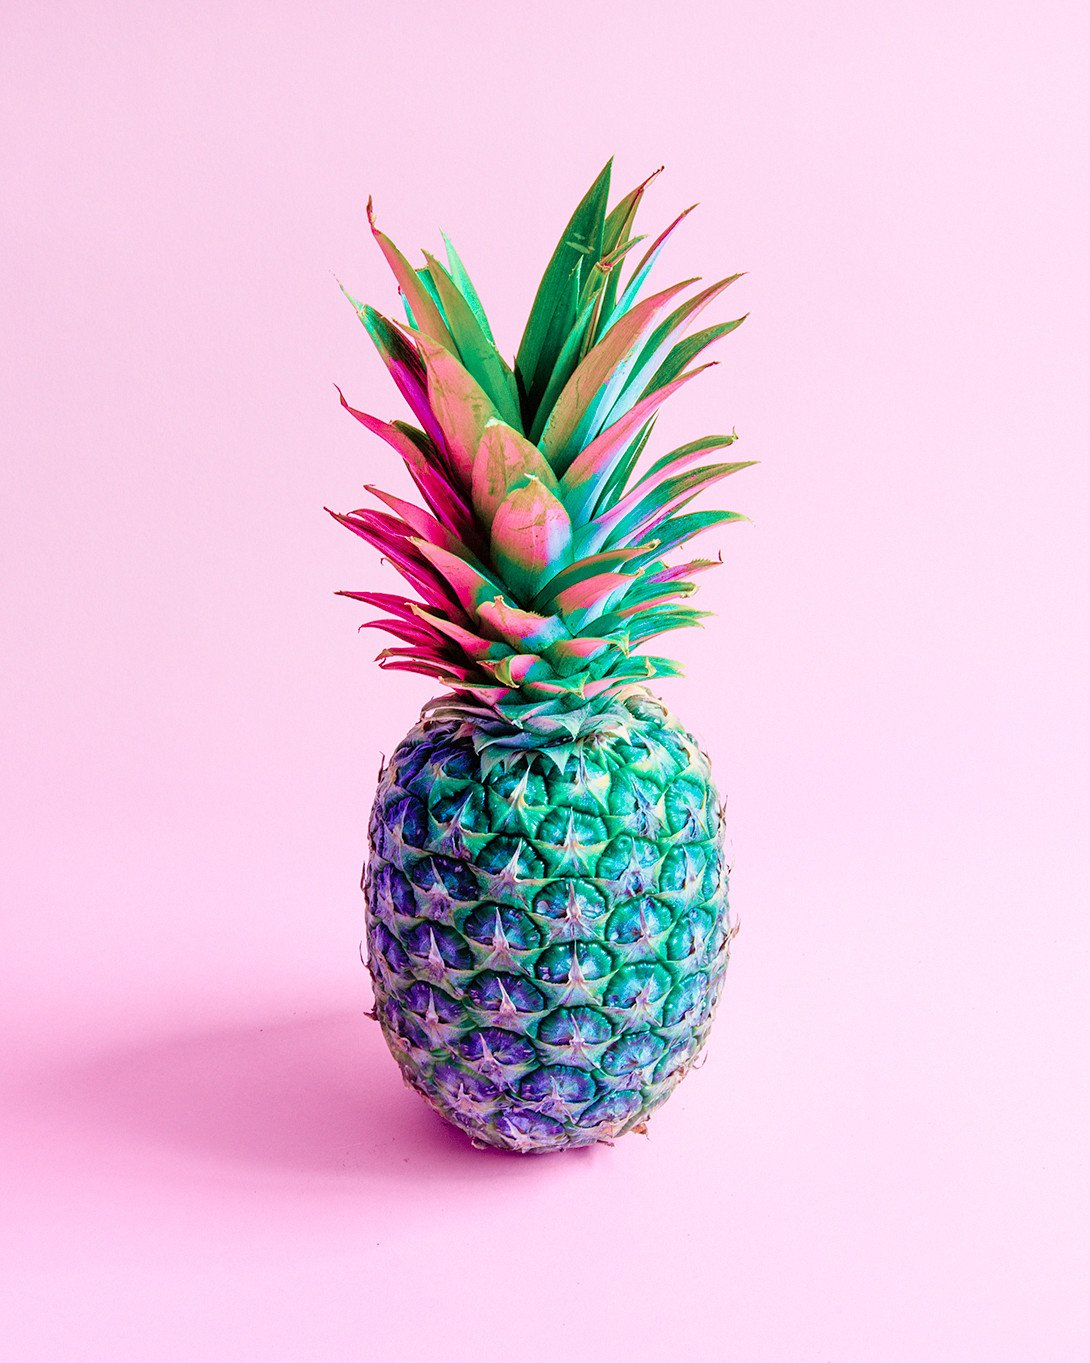 Matt Crump - Magic Pineapple, minus37